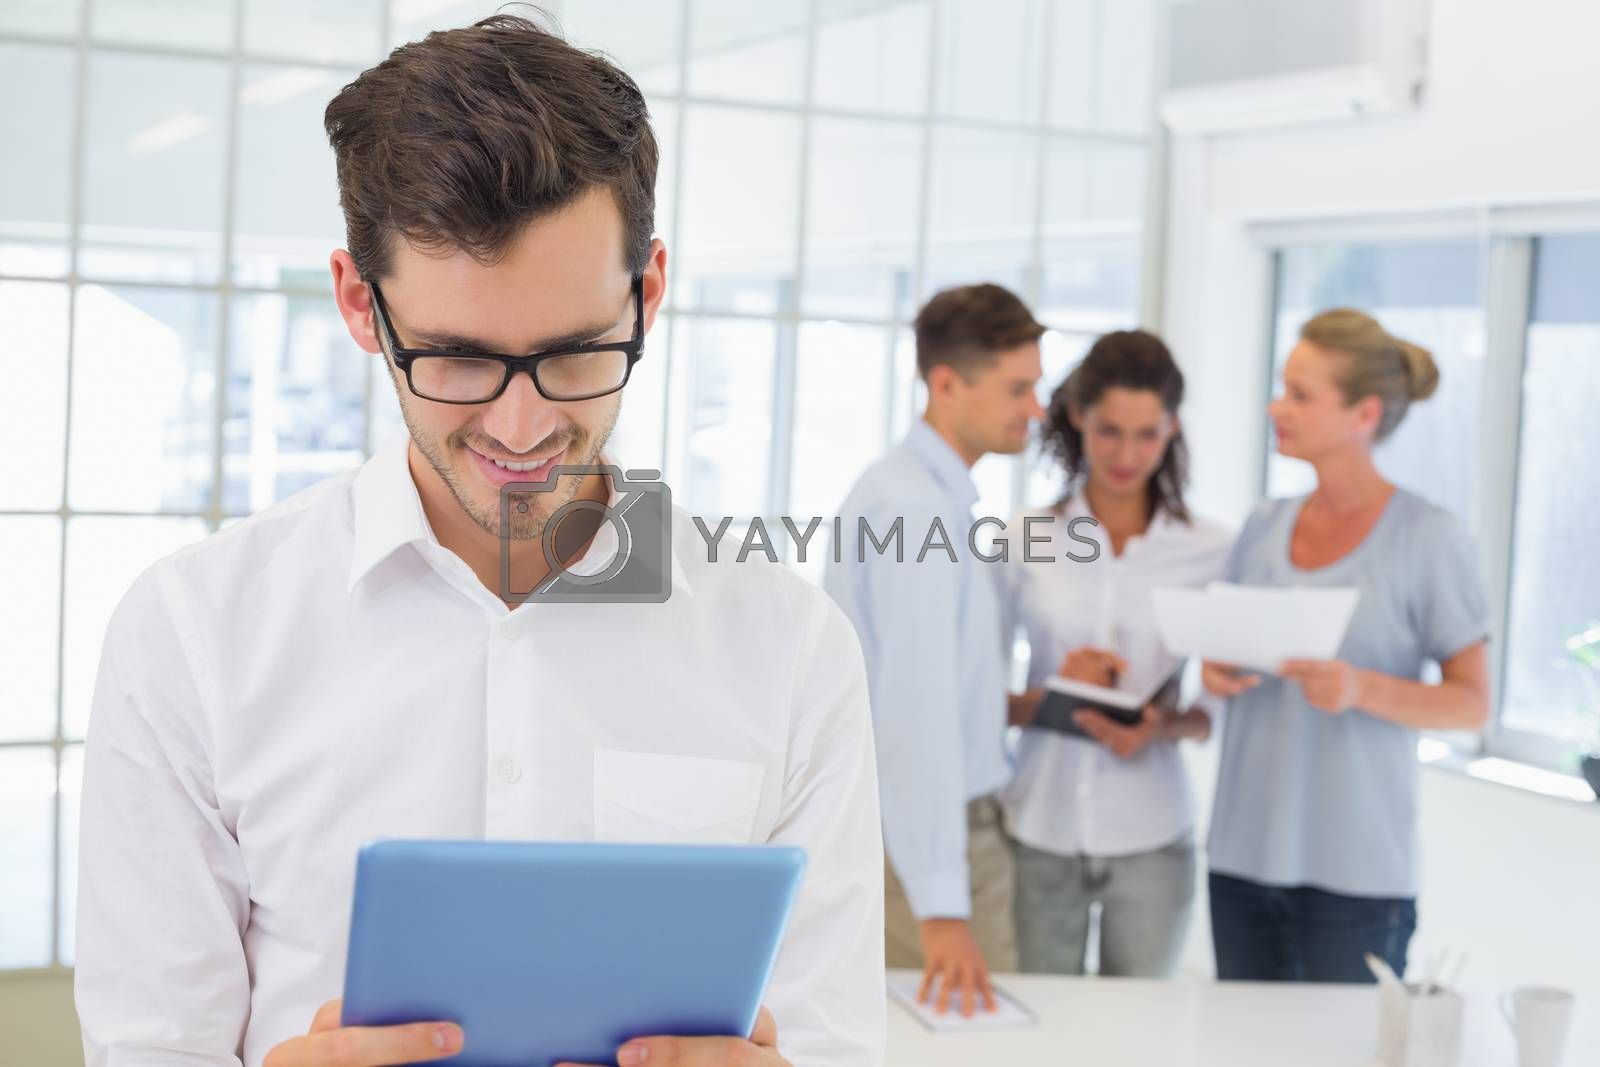 Royalty free image of Casual businessman using his tablet by Wavebreakmedia